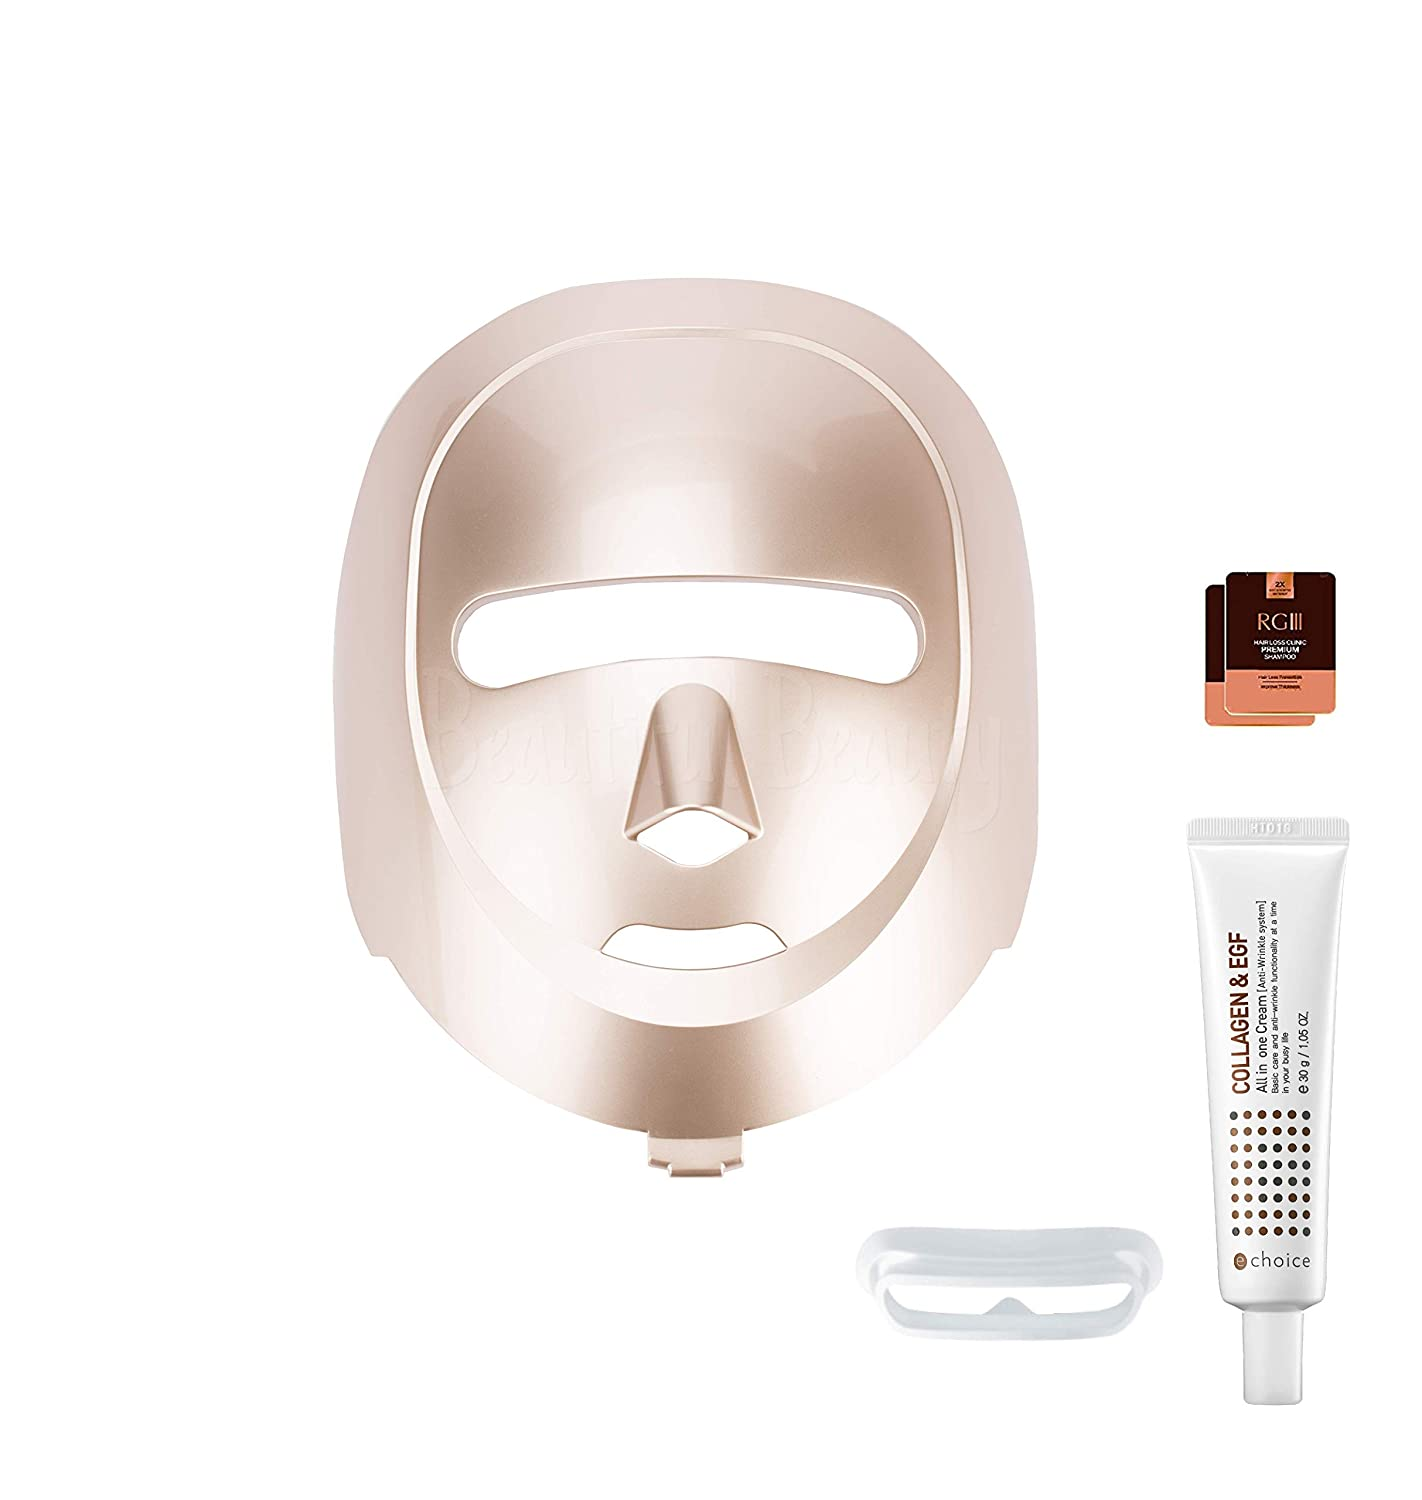 [WIBE] ECO FACE Near-infrared LED Mask for Home Facial LED Therapy | infrared lights for Anti-aging Wrinkle Smooth Skin Texture | Korean Skincare Device | with Collagen & EGF Cream/Eye shield/gift